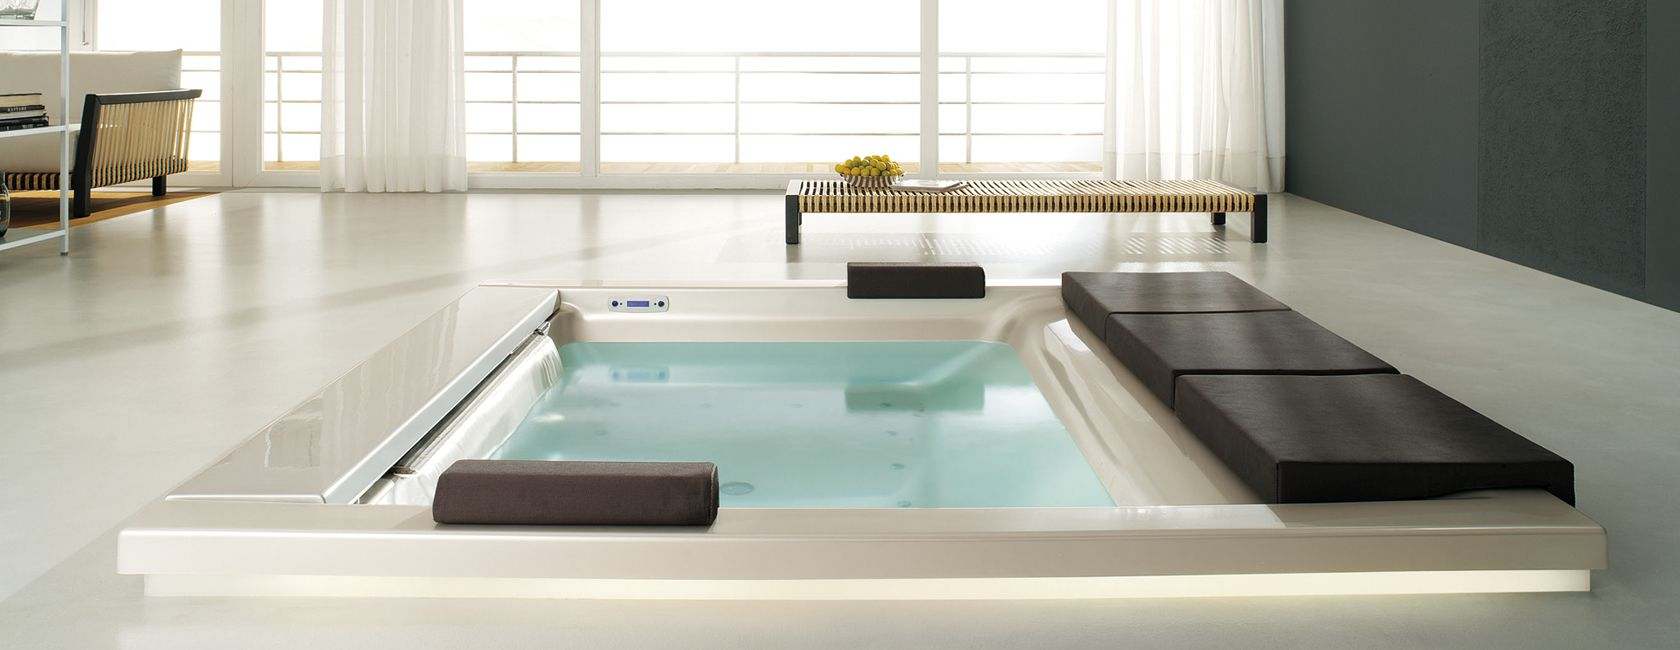 Luxus badezimmer mit whirlpool  Luxury Hot Tub for the Living Room. | Luxury Hot Tubs & Bath Tubs ...